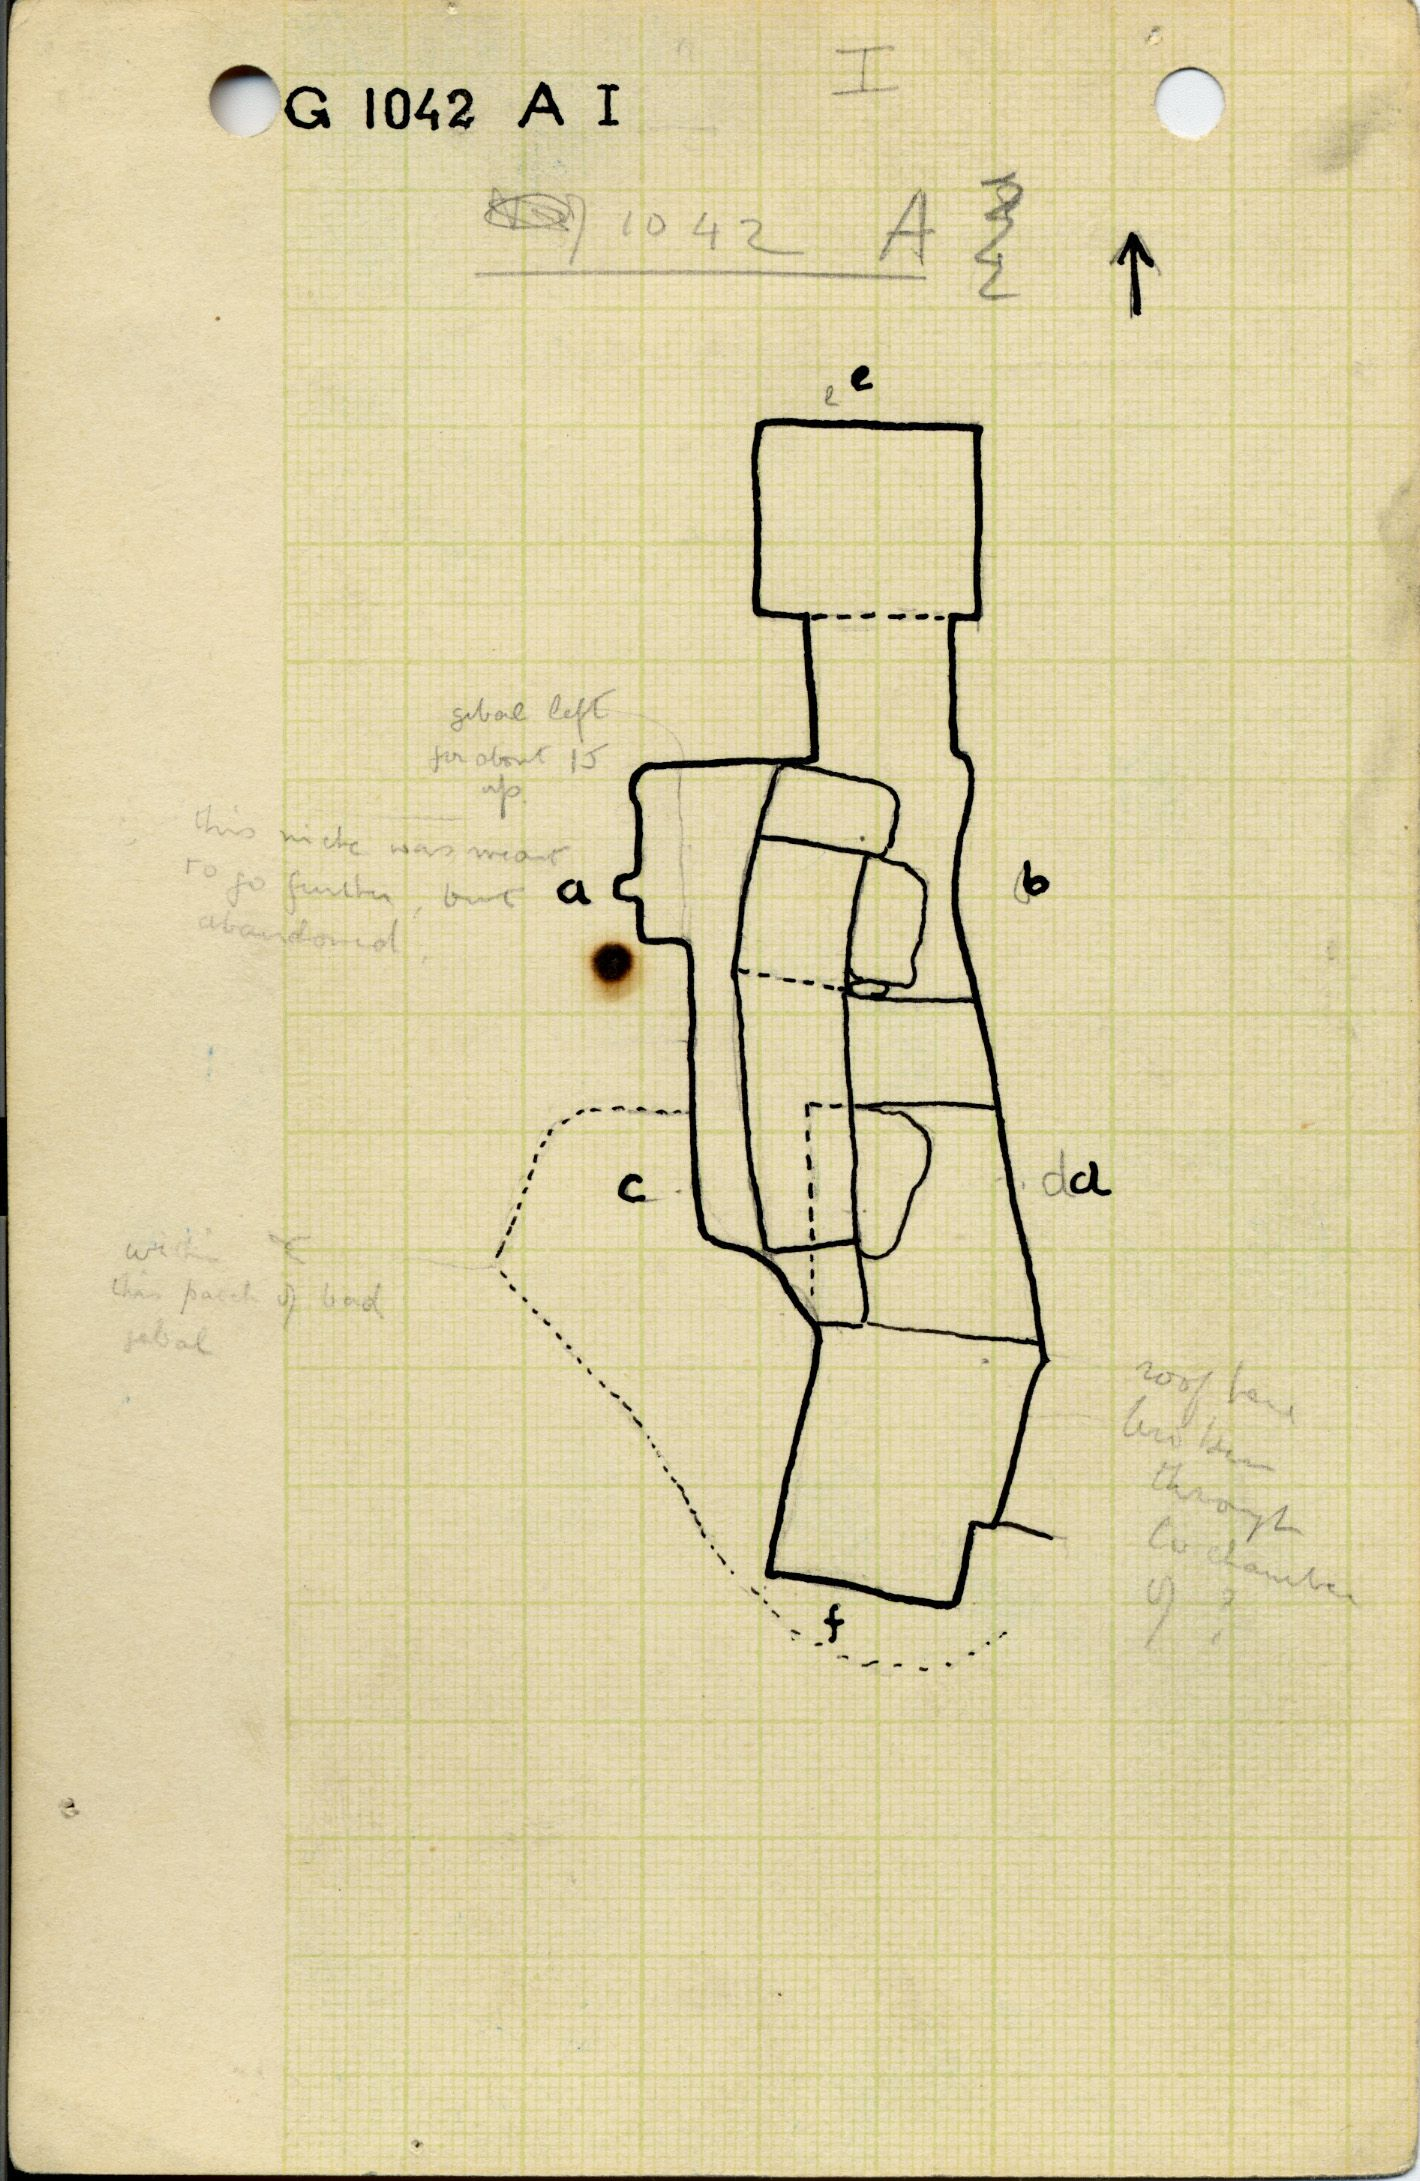 Maps and plans: G 1042, Shaft A